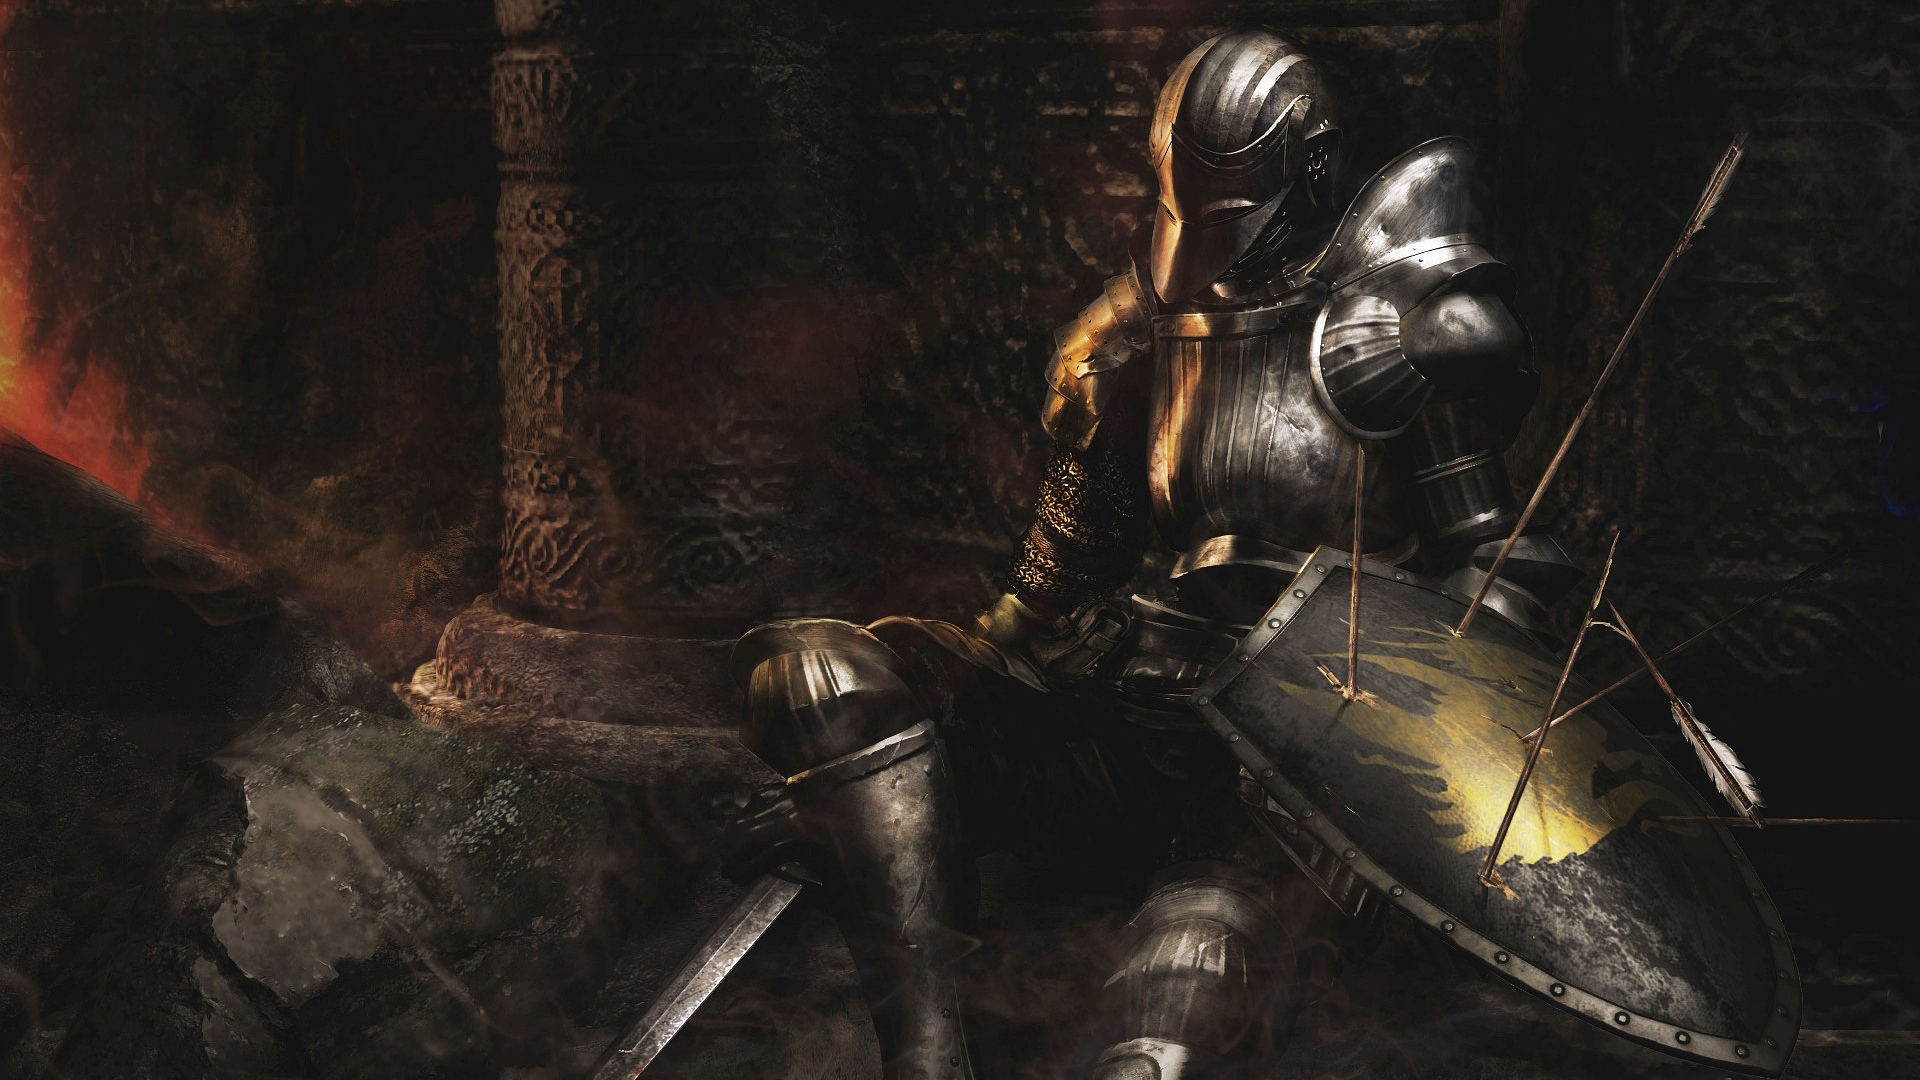 Download wallpaper 1920x1080 dark souls armor shiled arrows dark souls armor shiled voltagebd Images